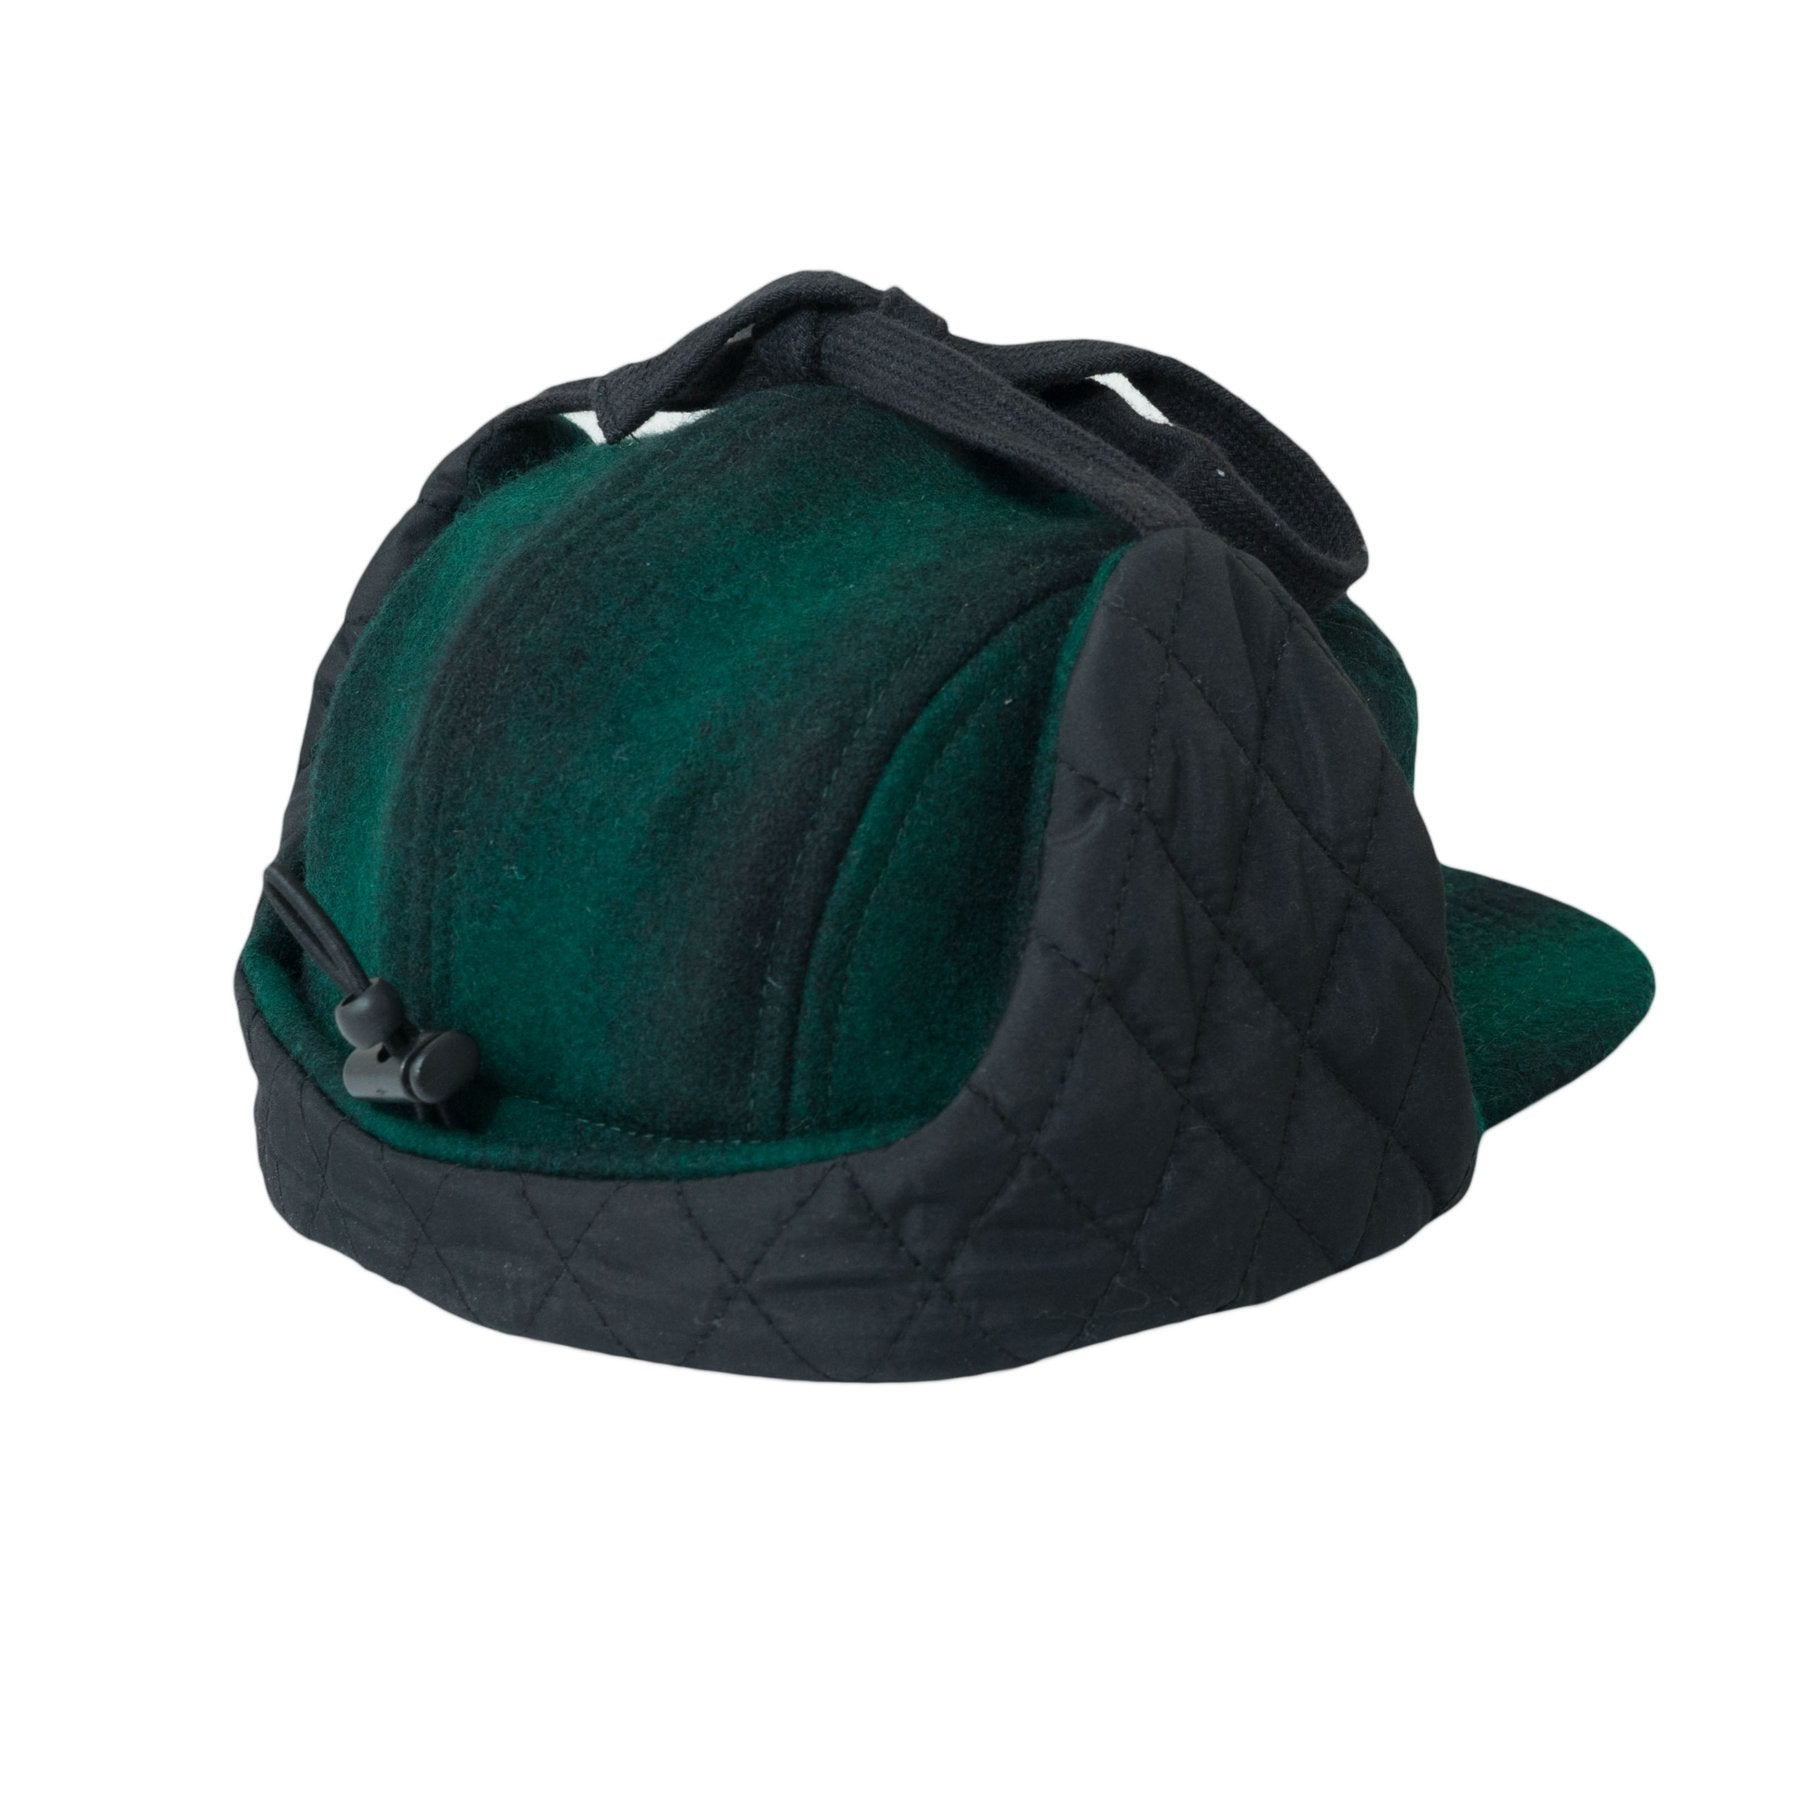 WOOL 5 PANEL W. EARS - GREEN/BLACK